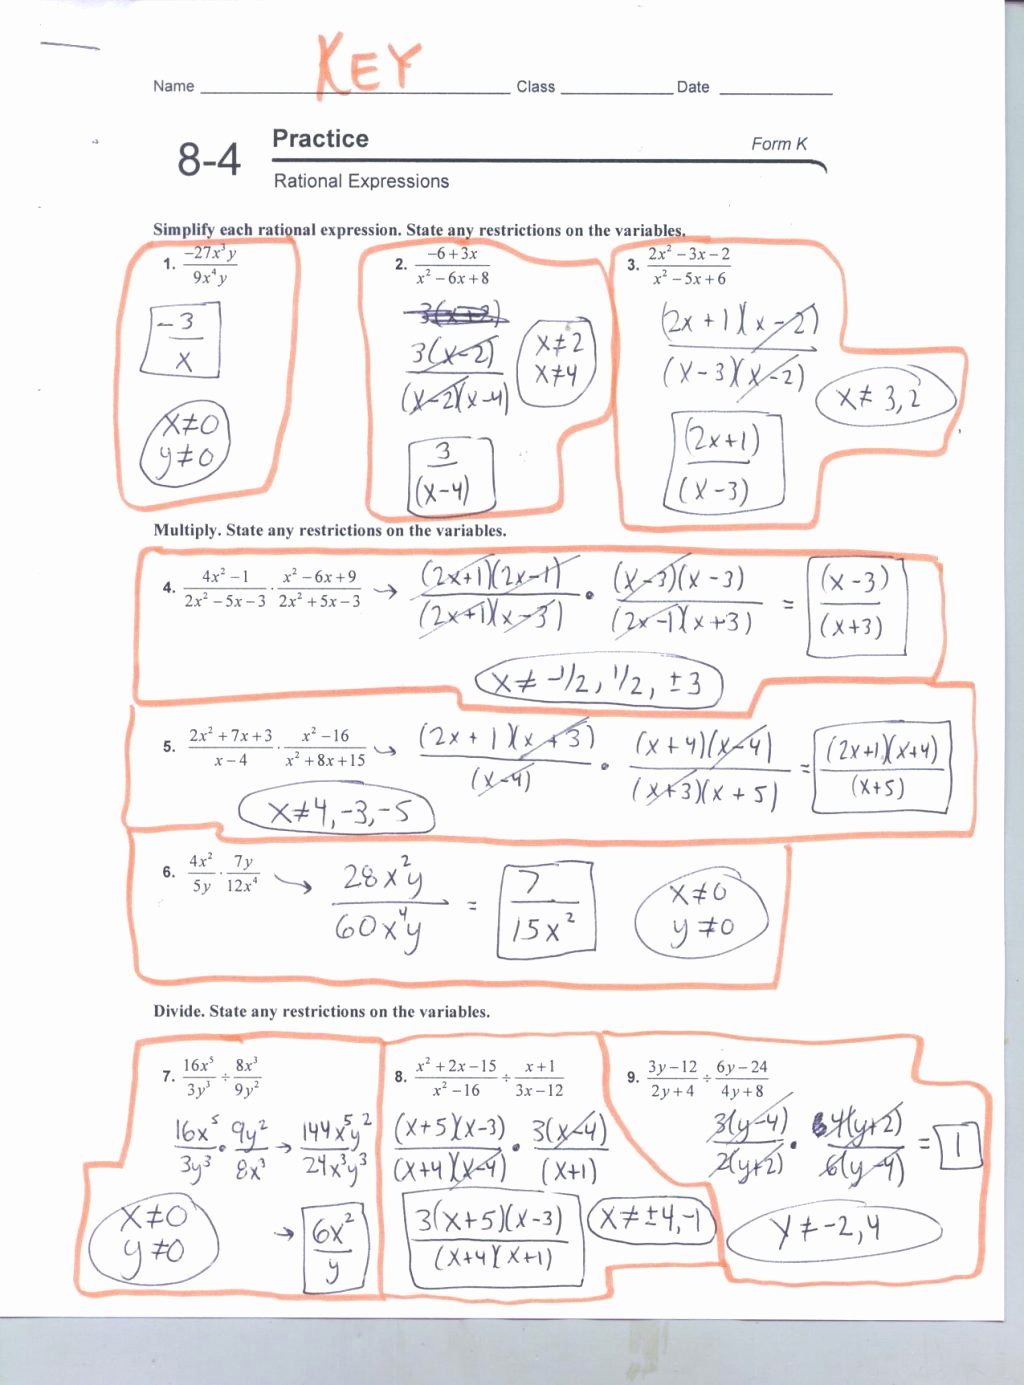 Solving Polynomial Equations Worksheet Answers Awesome Lesson 6 4 solving Polynomial Equations Worksheet Answers